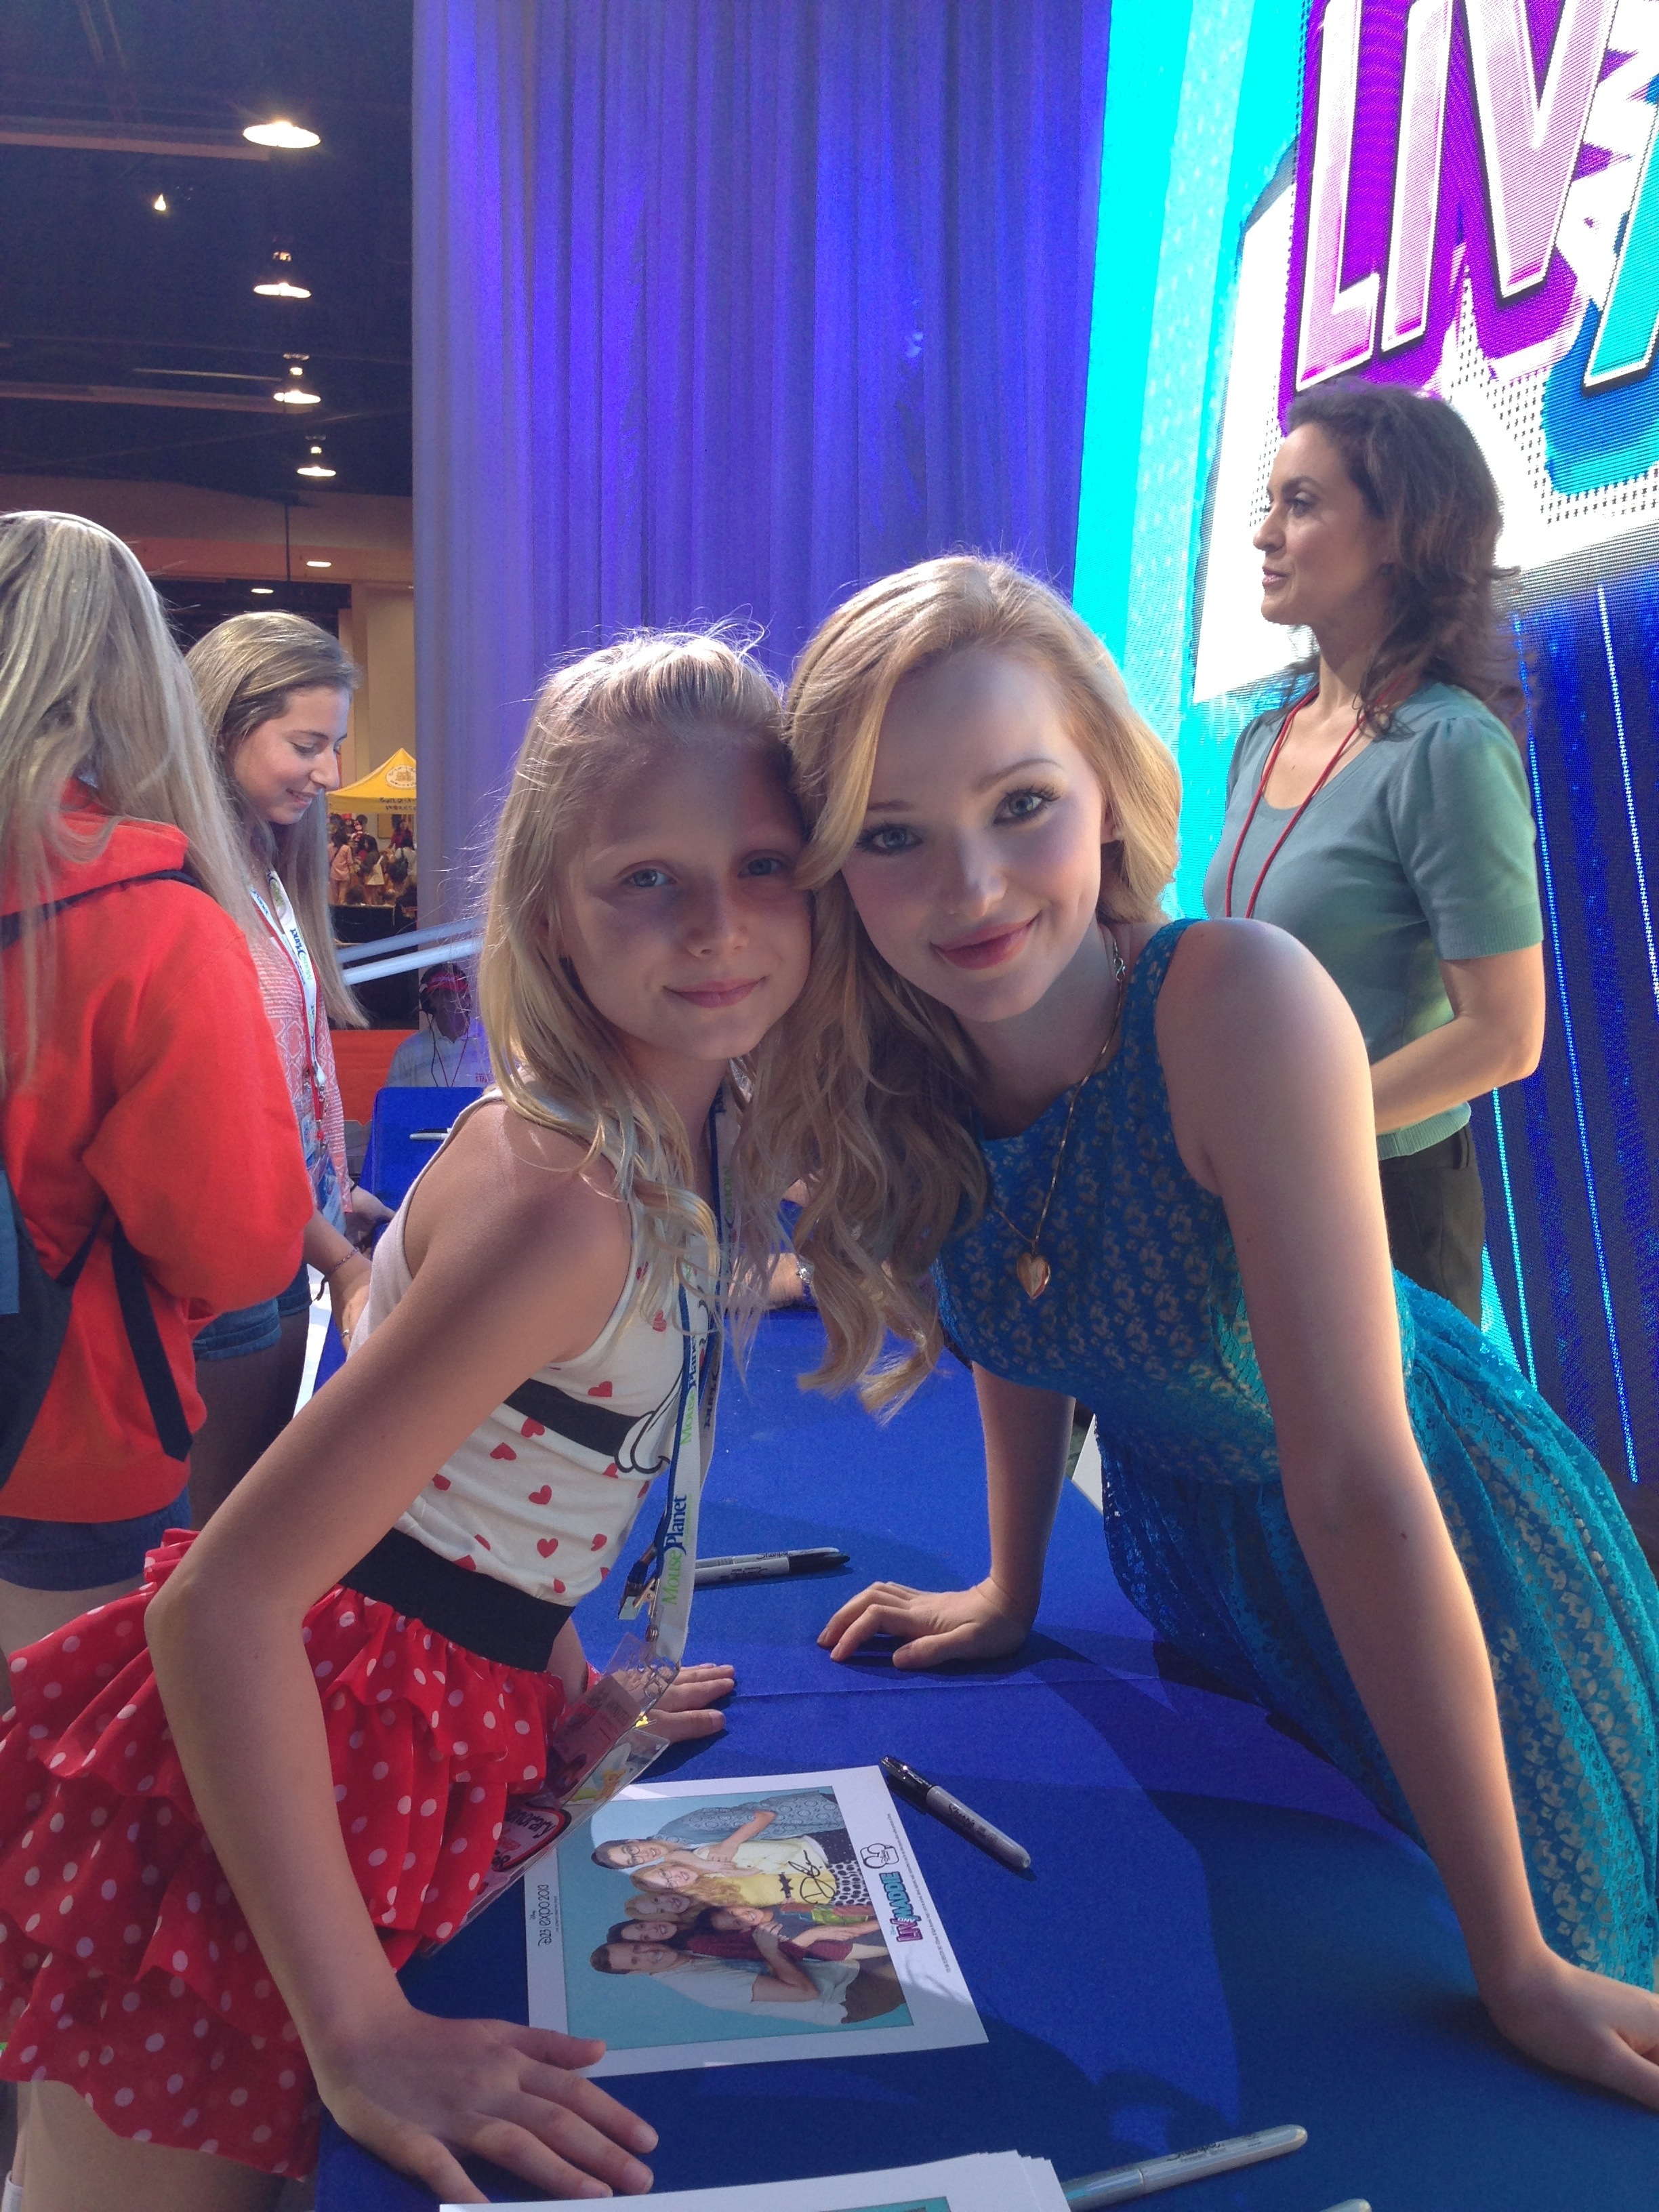 The Liv and Maddie cast meet and greet at D23 Expo | Reach for the